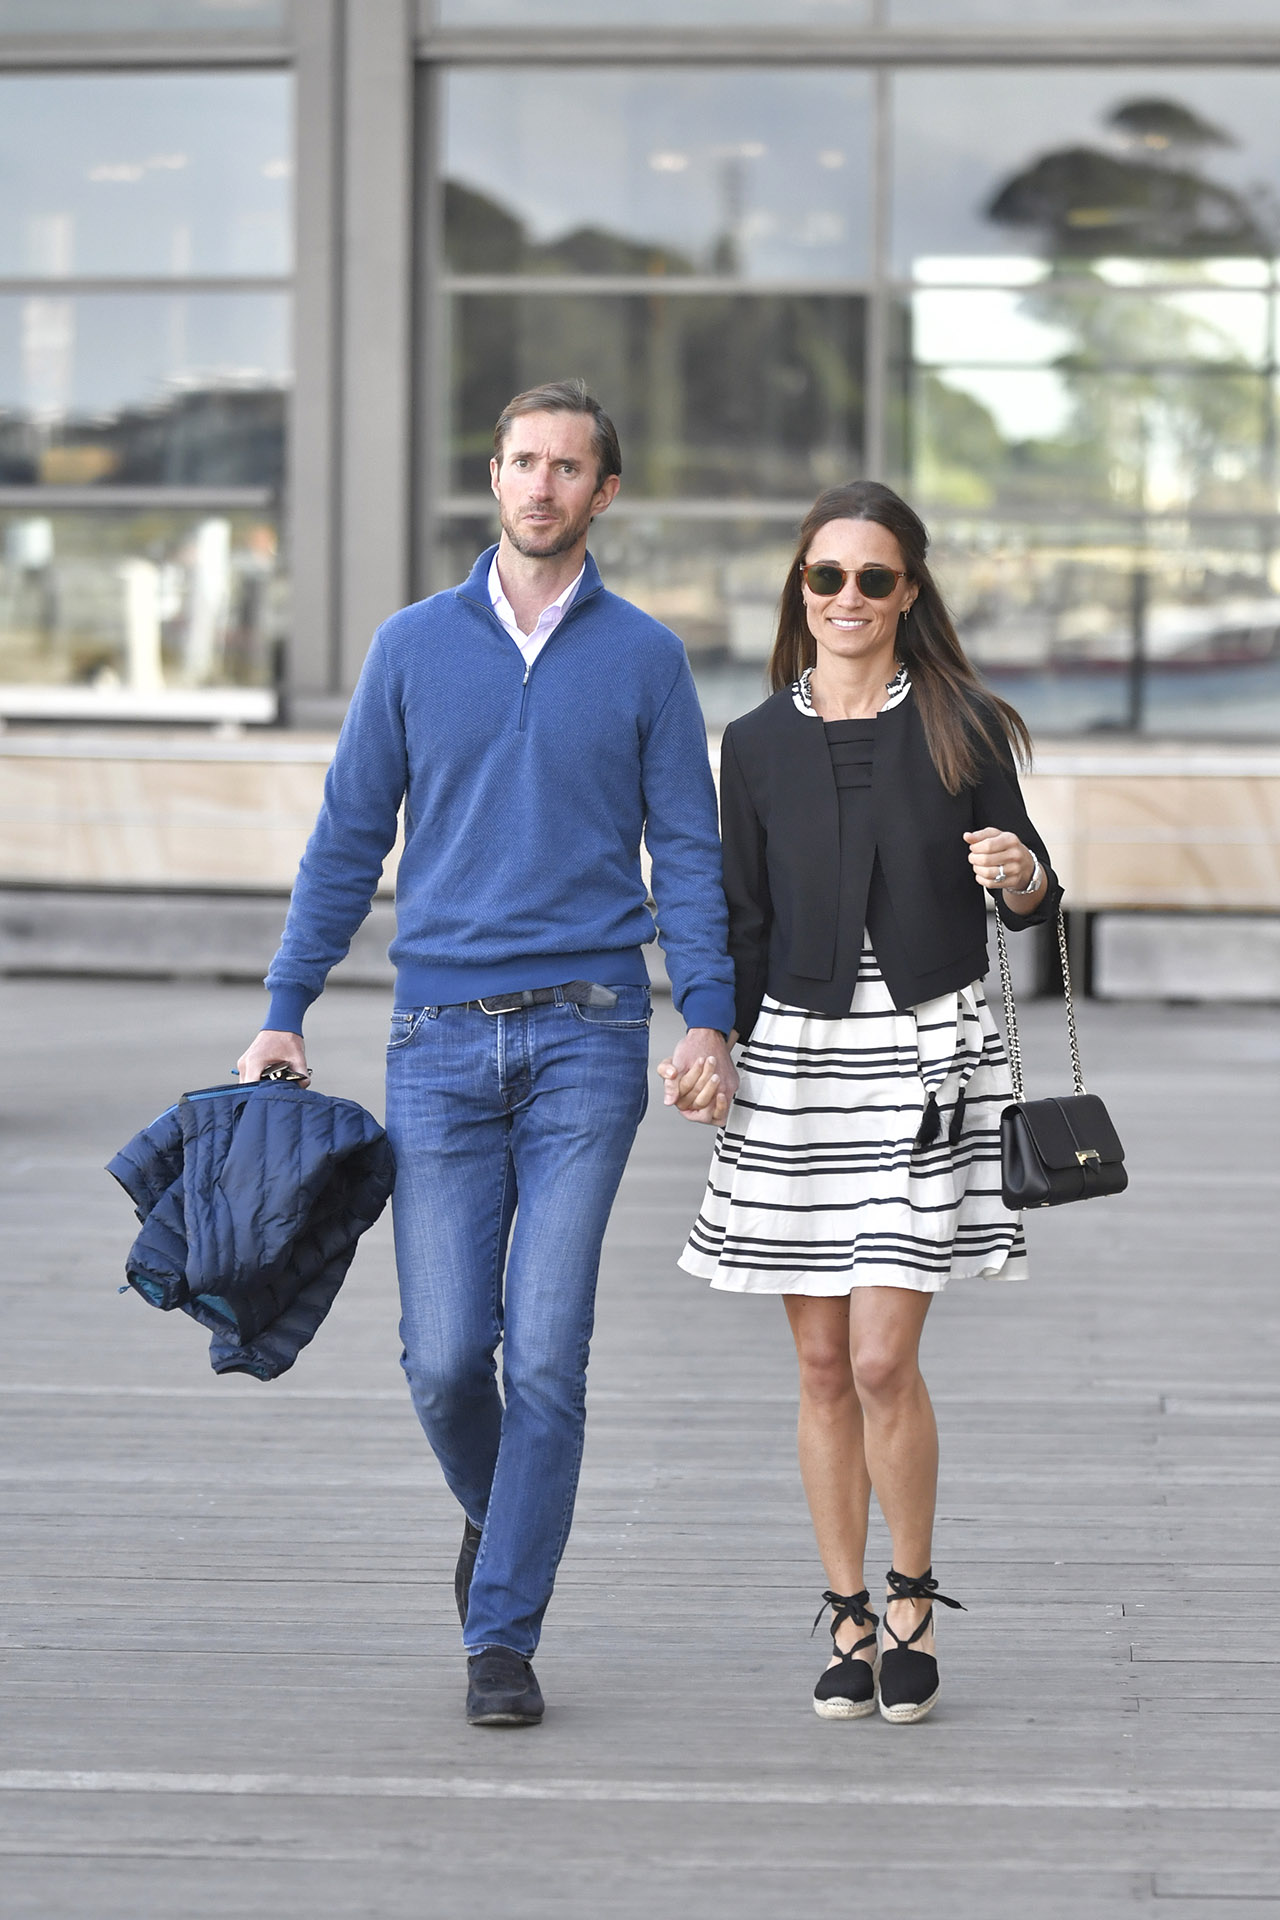 Pippa Middleton and new husband James Matthews are seen getting on a water taxi in Sydney harbour during their honeymoon <P> Pictured: Pippa Middleton and James Matthews <B>Ref: SPL1410918  310517  </B><BR/> Picture by: Splash News<BR/> </P><P> <B>Splash News and Pictures</B><BR/> Los Angeles:310-821-2666<BR/> New York:212-619-2666<BR/> London:870-934-2666<BR/> photodesk@splashnews.com<BR/> </P>